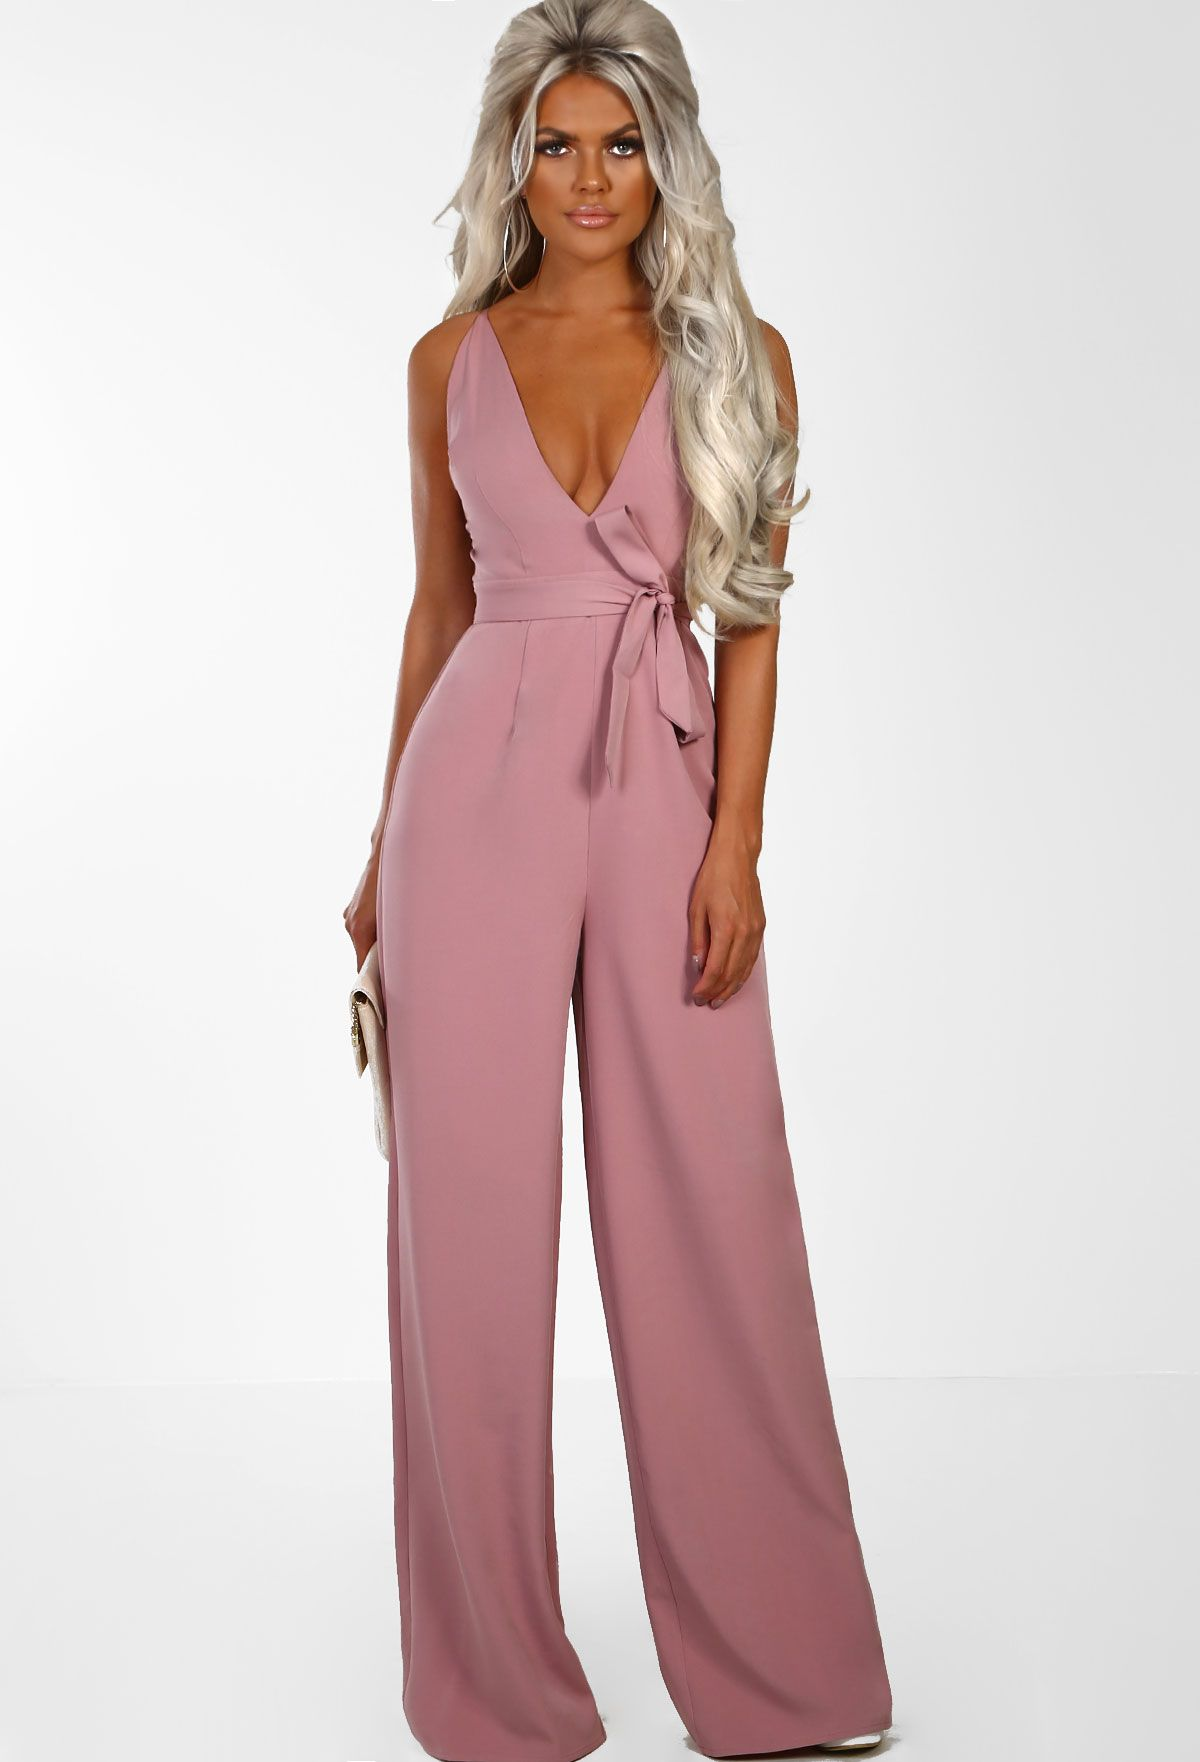 cfe892901da0 Shop women s jumpsuits and playsuits at Pink Boutique - From wrap playsuits  to wide leg jumpsuits